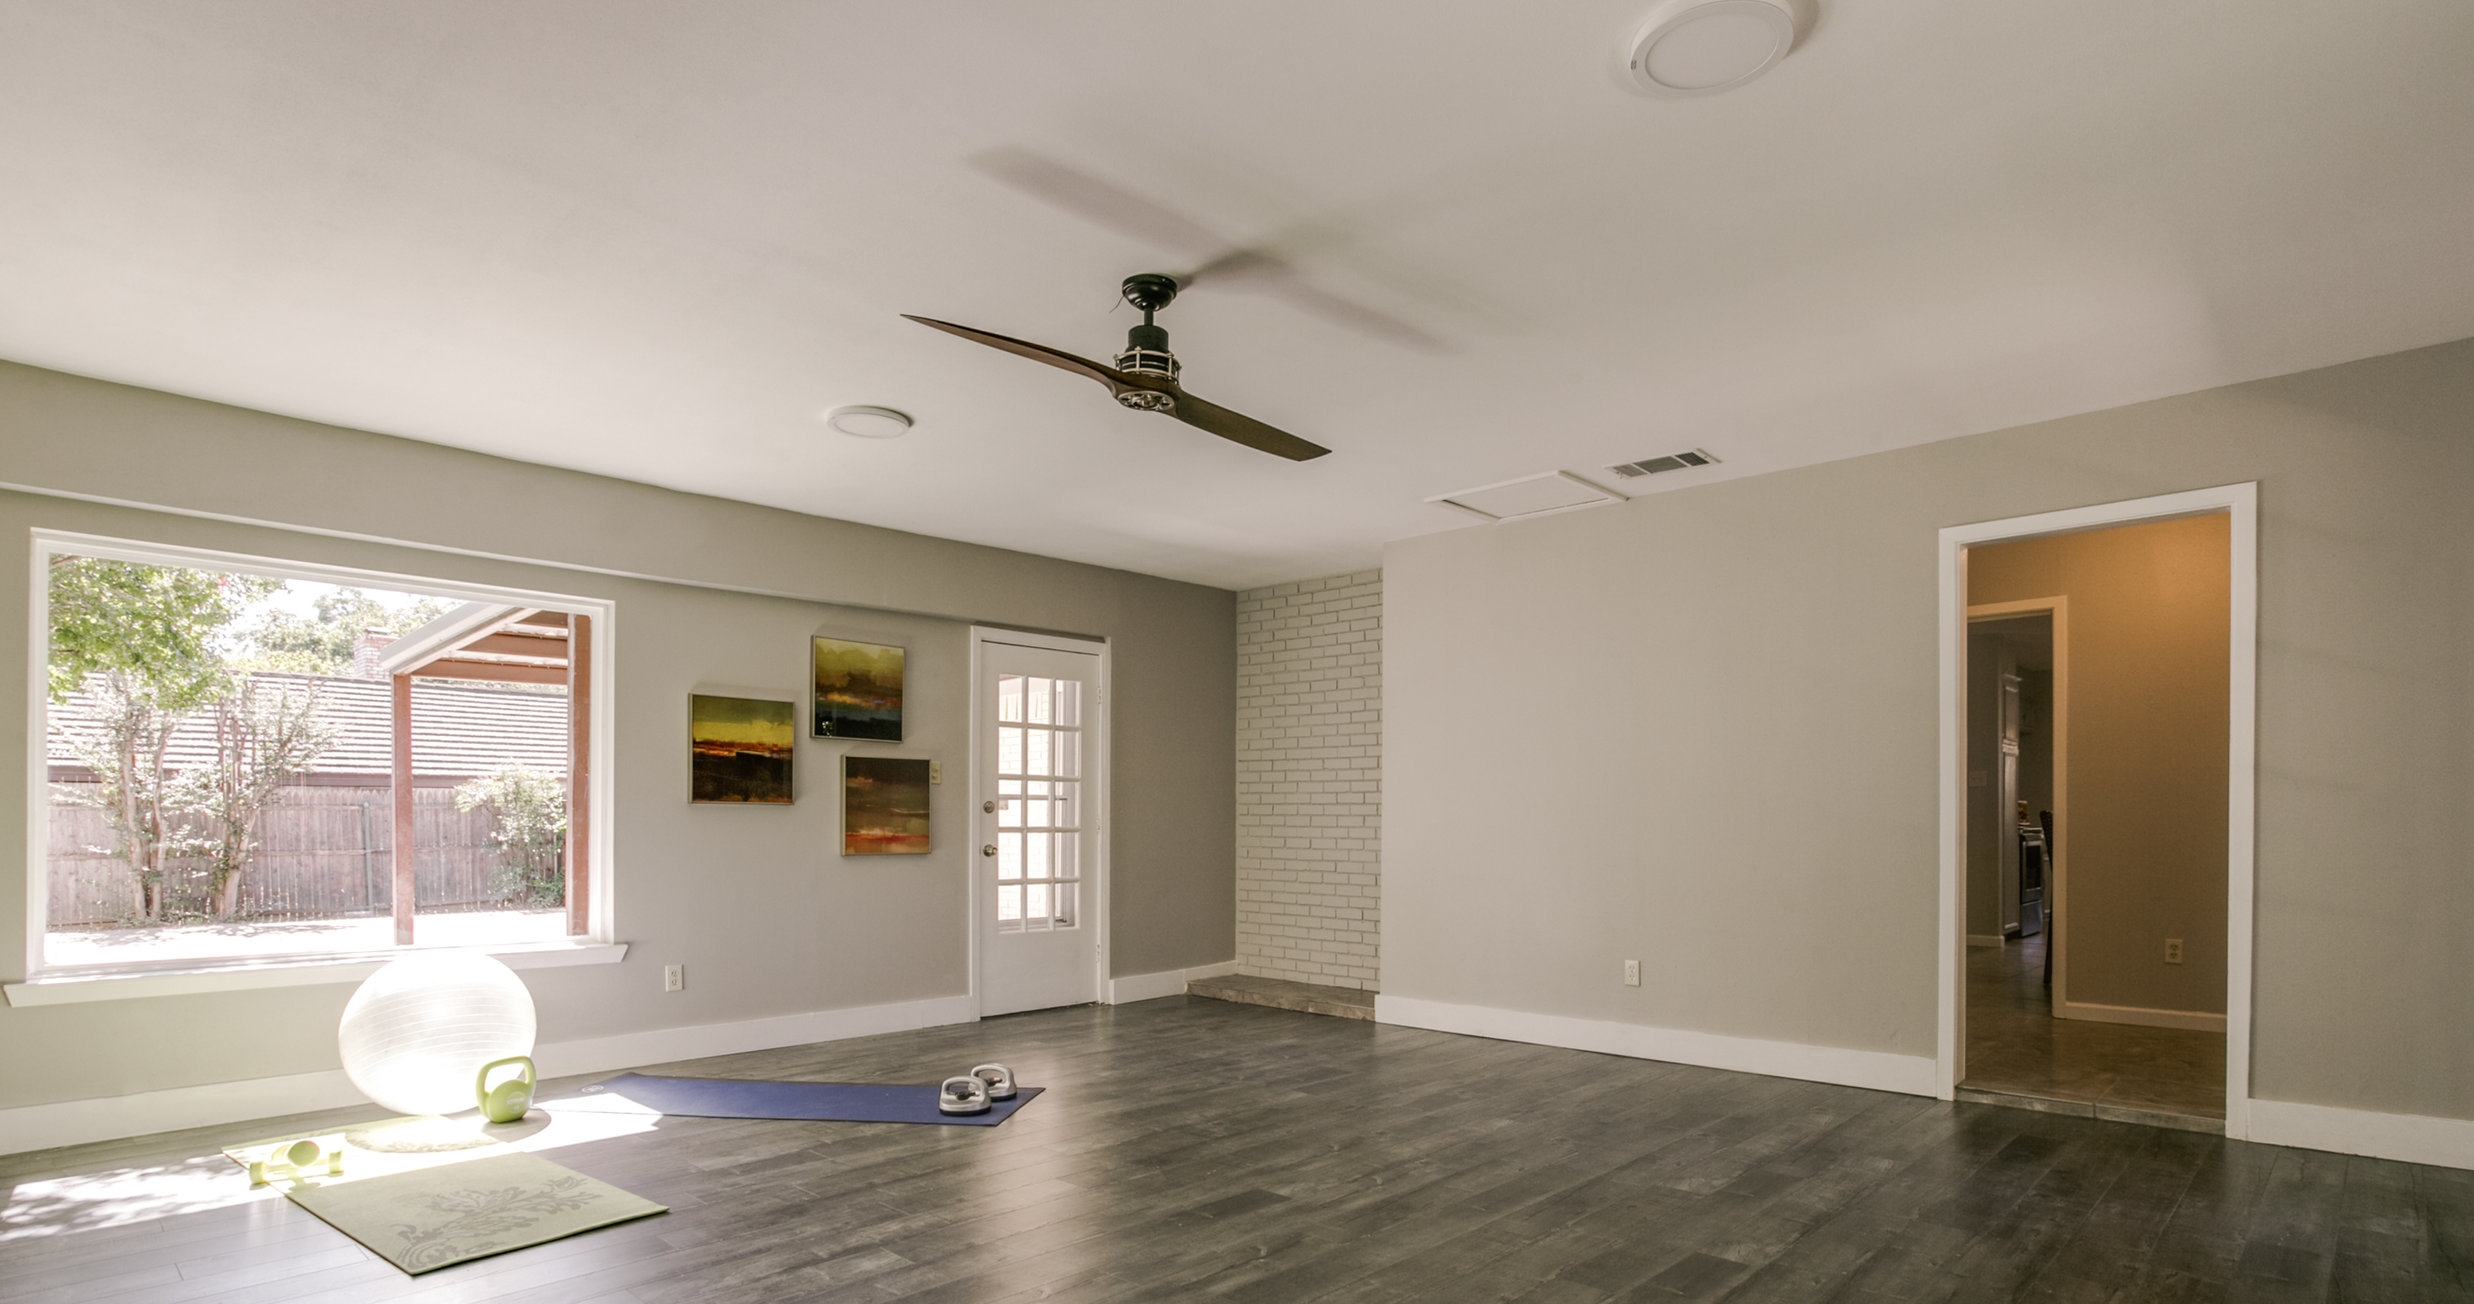 Staged Home Gym   Source: M Style Home Staging/ Shoot2Sell Photography